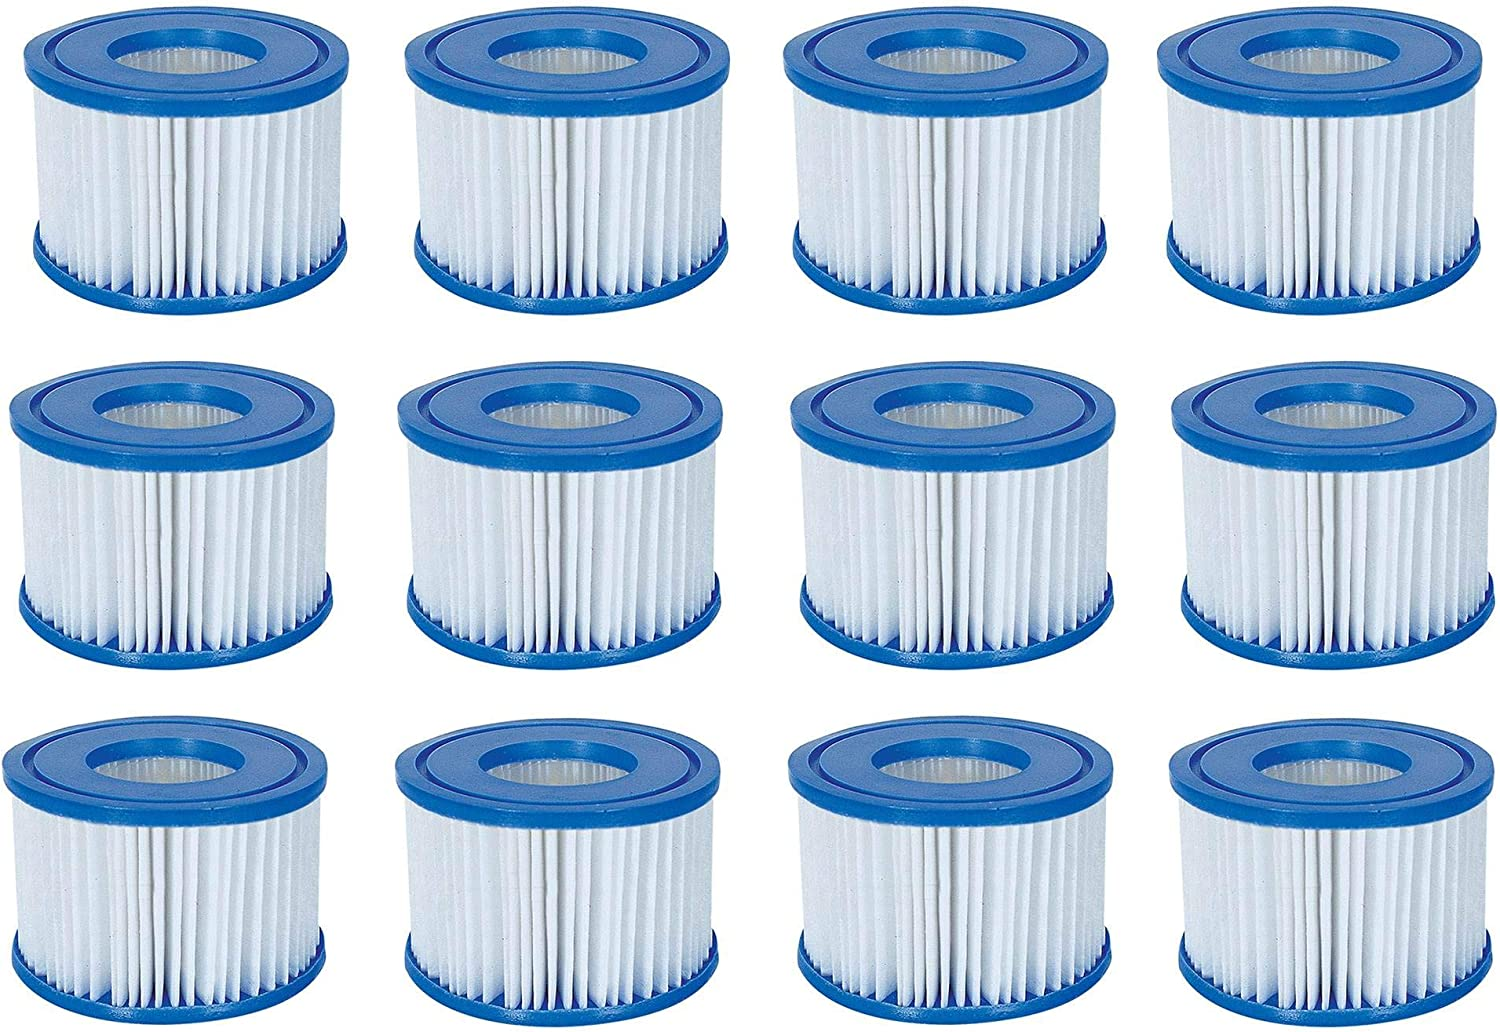 Bestway Spa Filter Pump Replacement Cartridge Type VI (12 Pack) (Coleman)